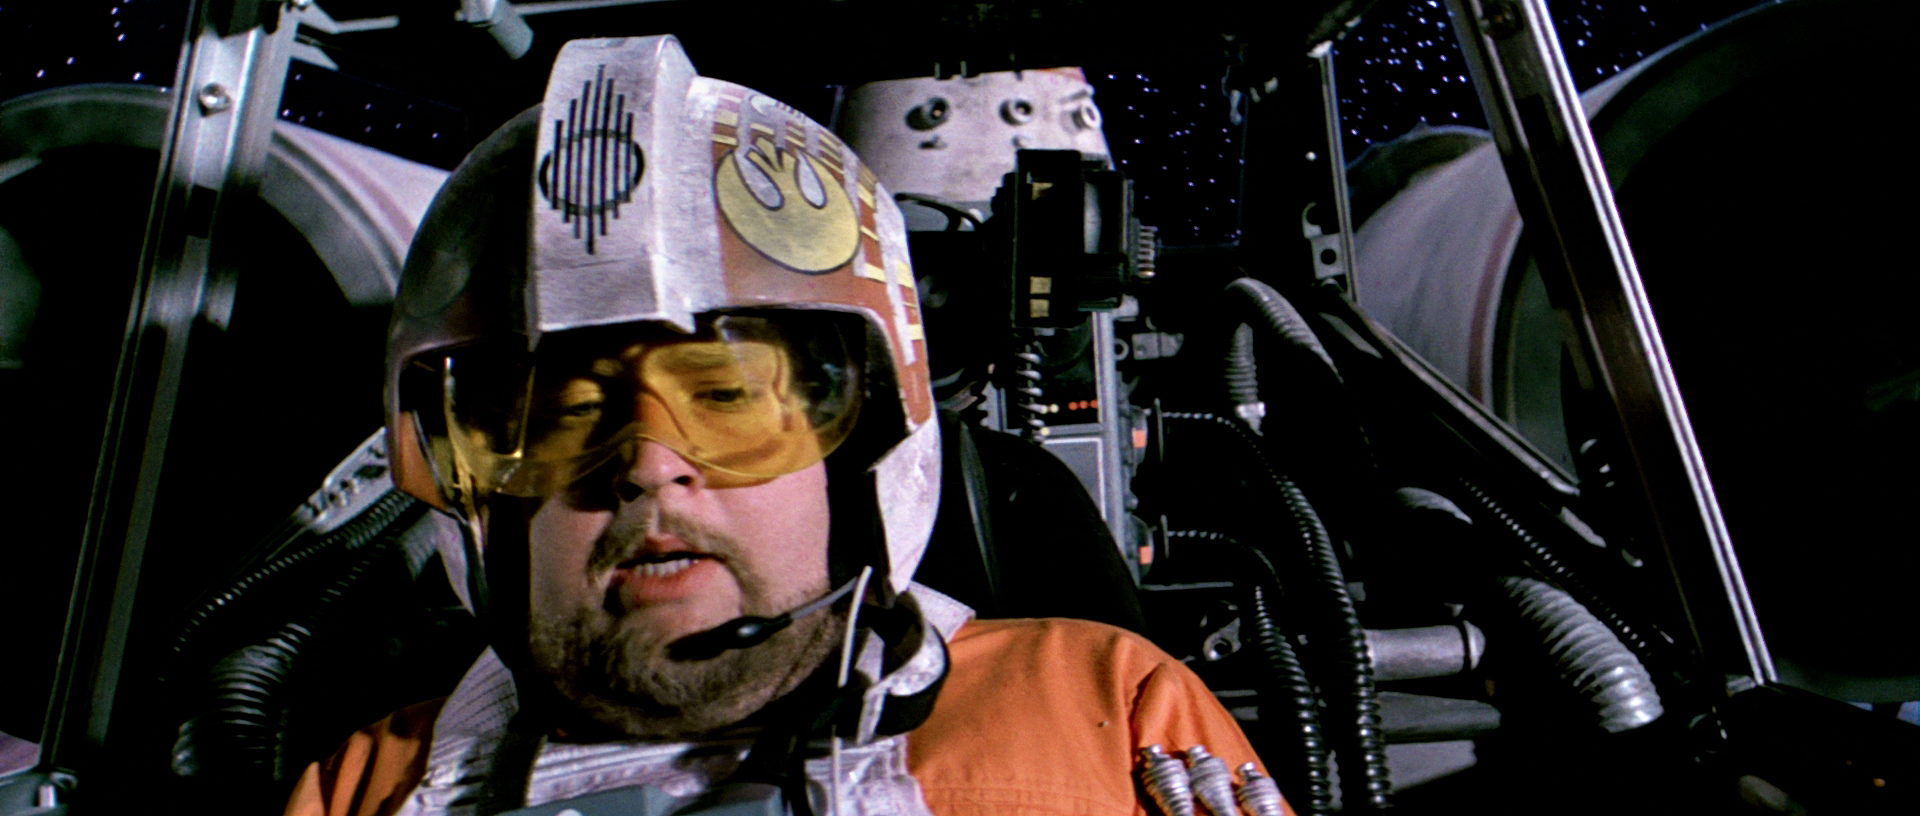 Twenty Star Wars GIFs That Reaffirm Your Love of Star Wars, and Maybe the Internet